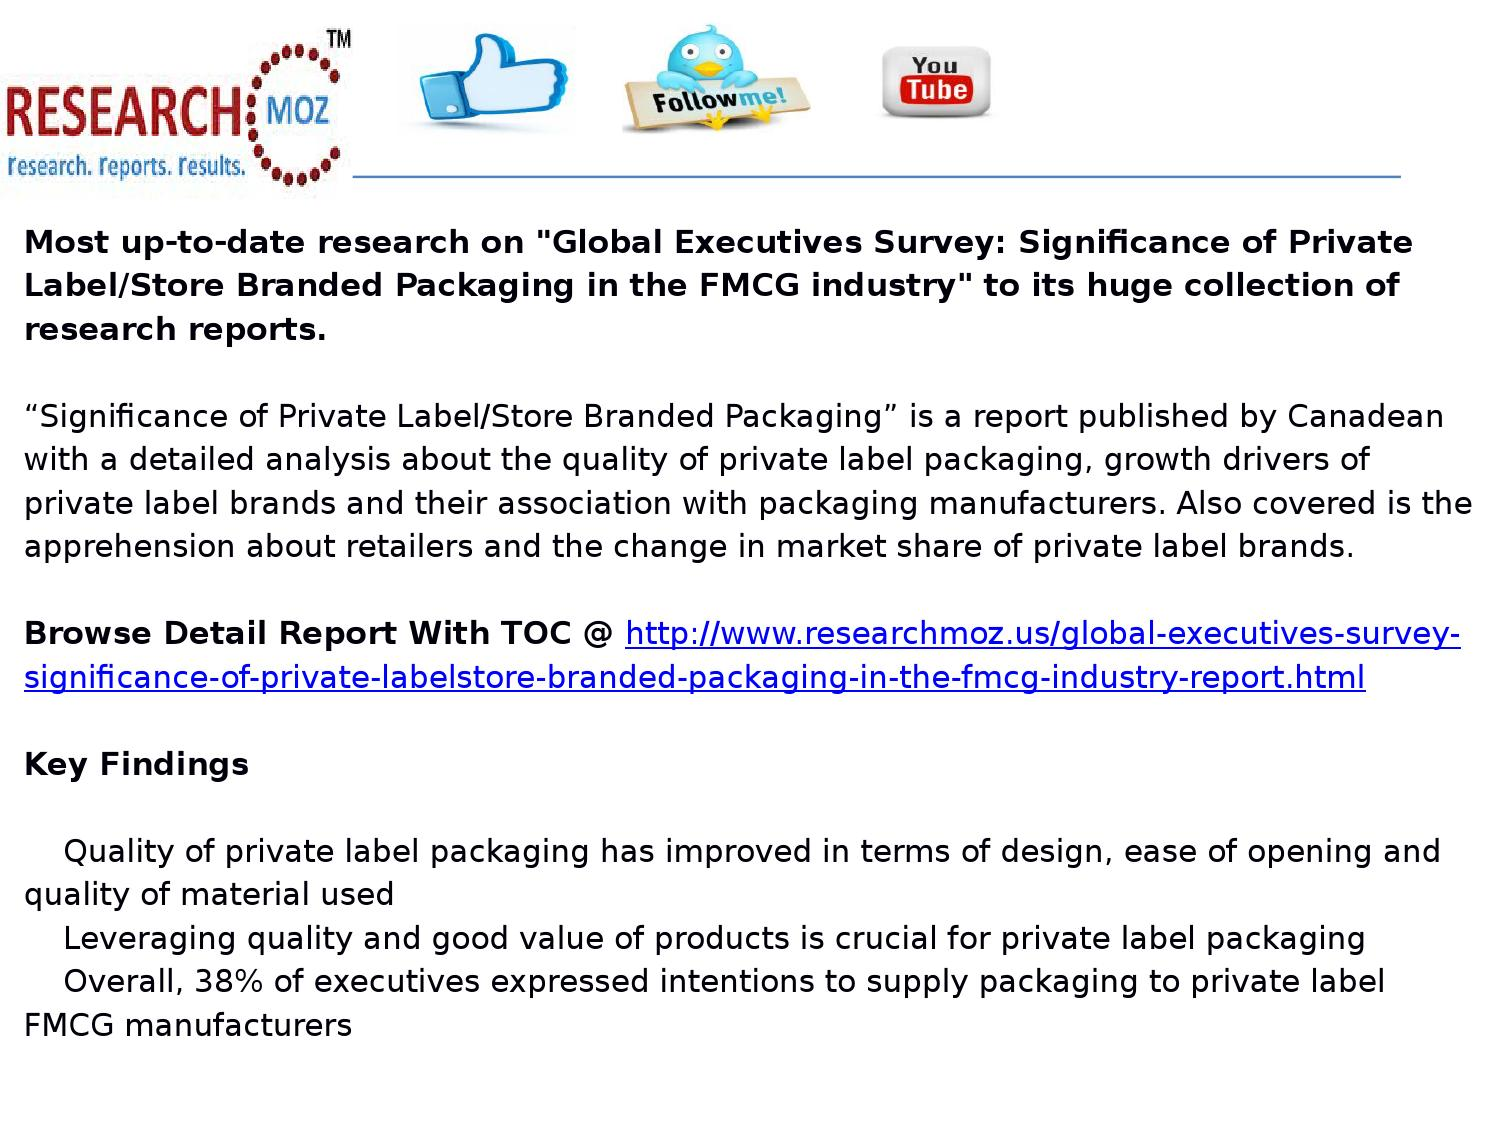 Global executives survey: significance of private label